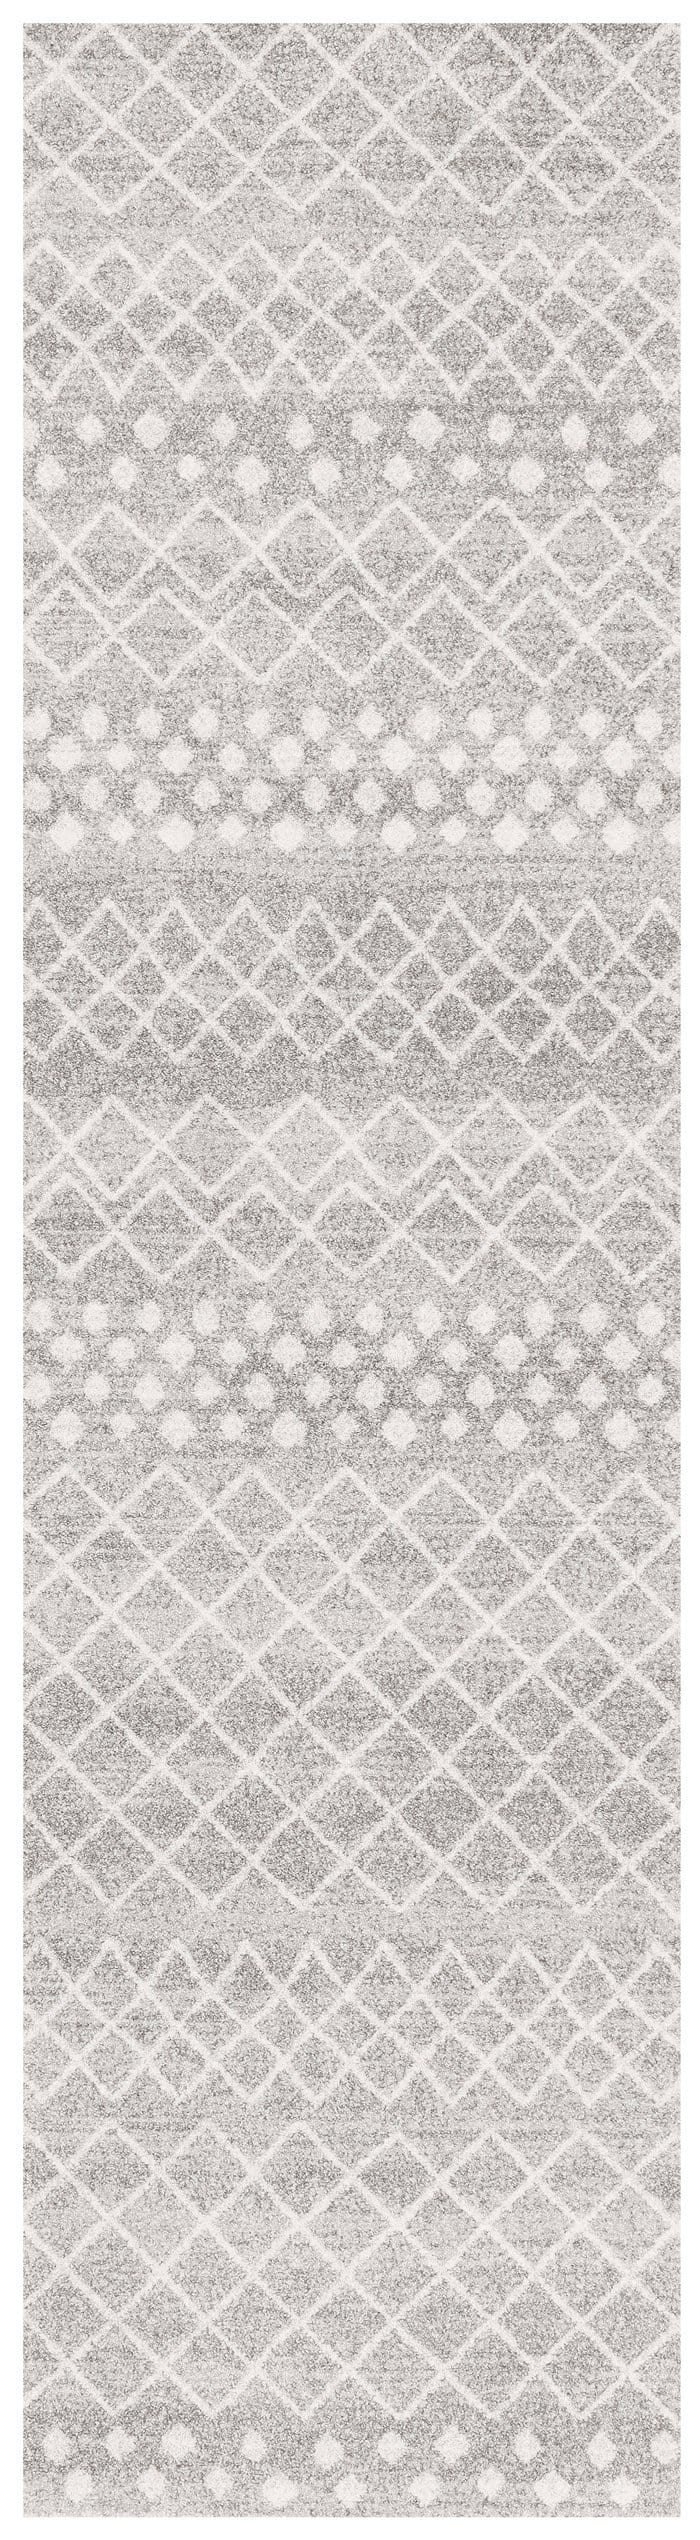 Apopa Grey & White Diamond Pattern Runner Rug